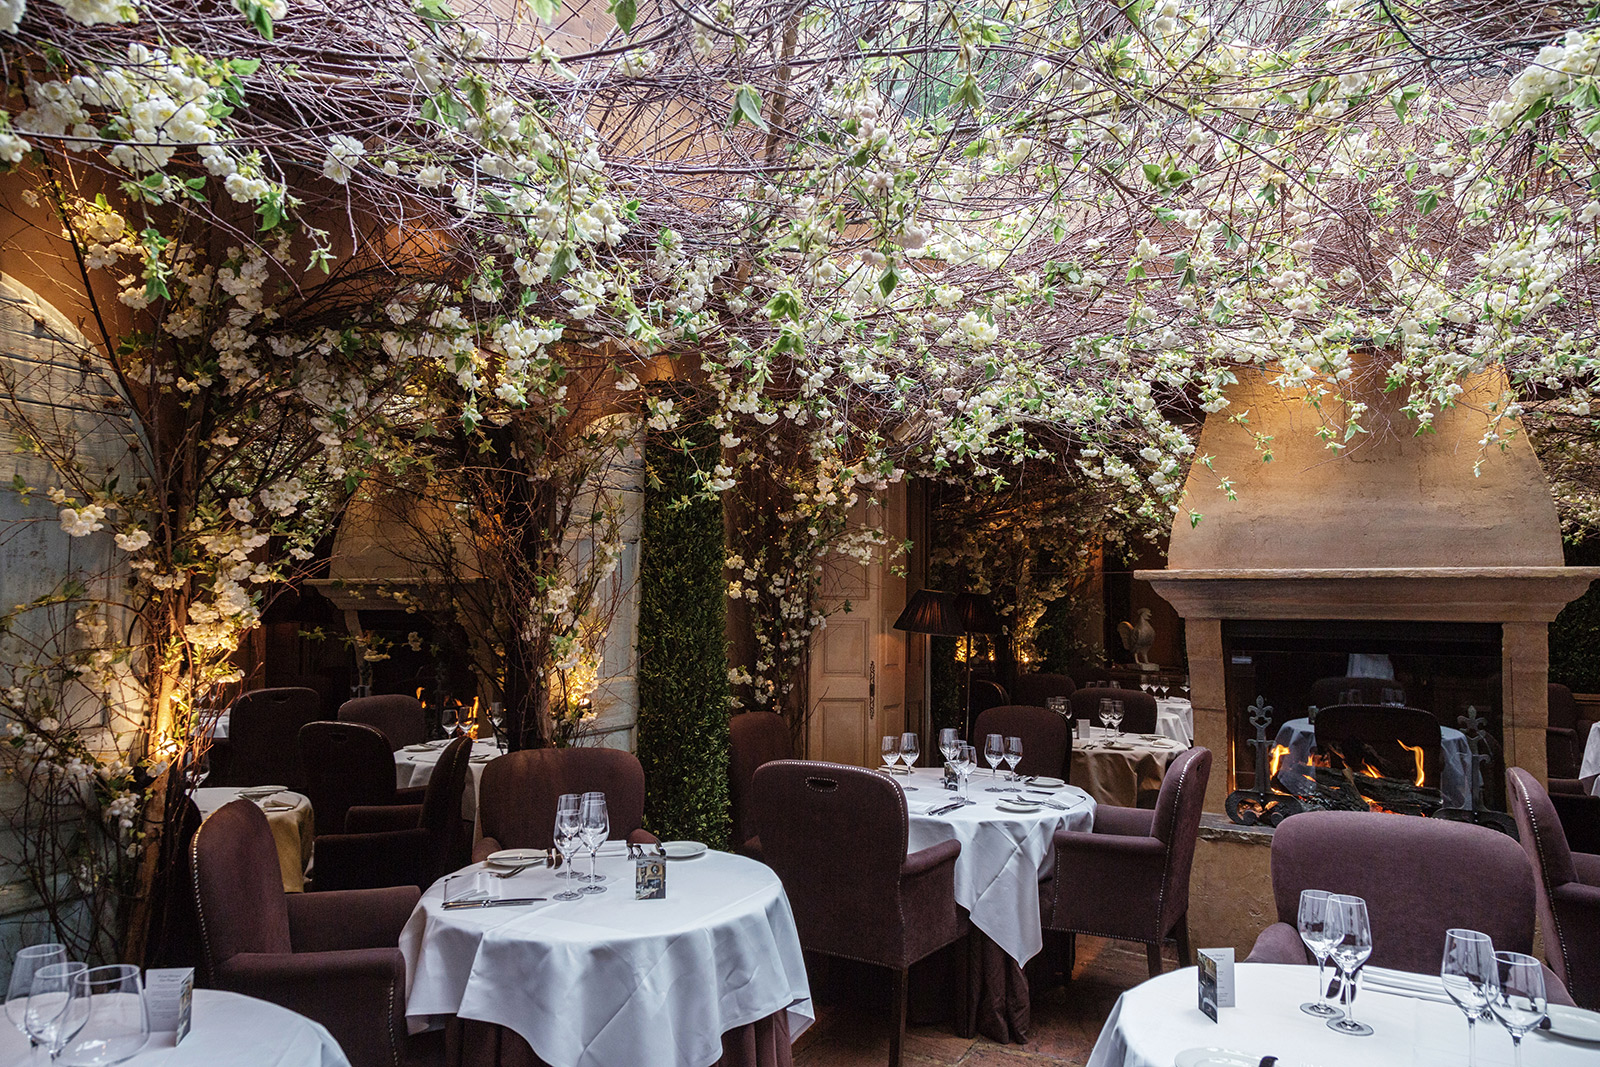 London restaurants with gardens – Clos Maggiore